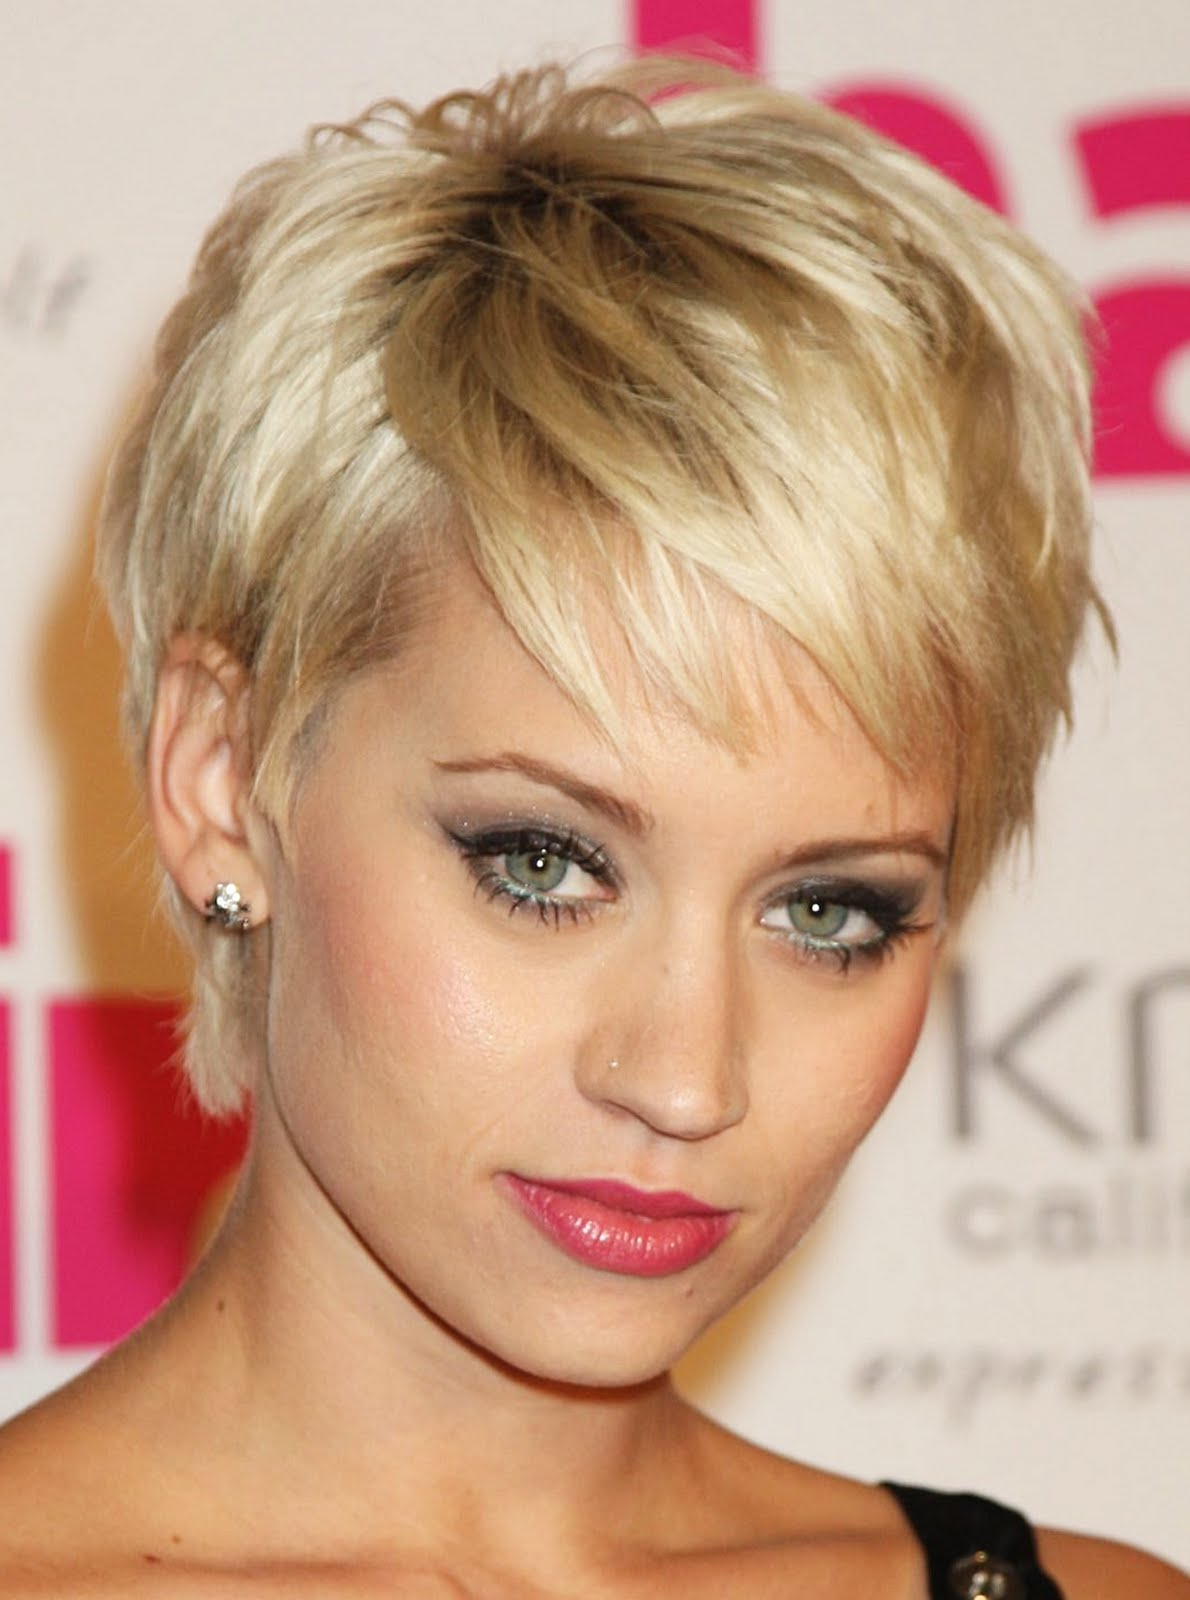 flattering hairstyles for thin hair photo - 3